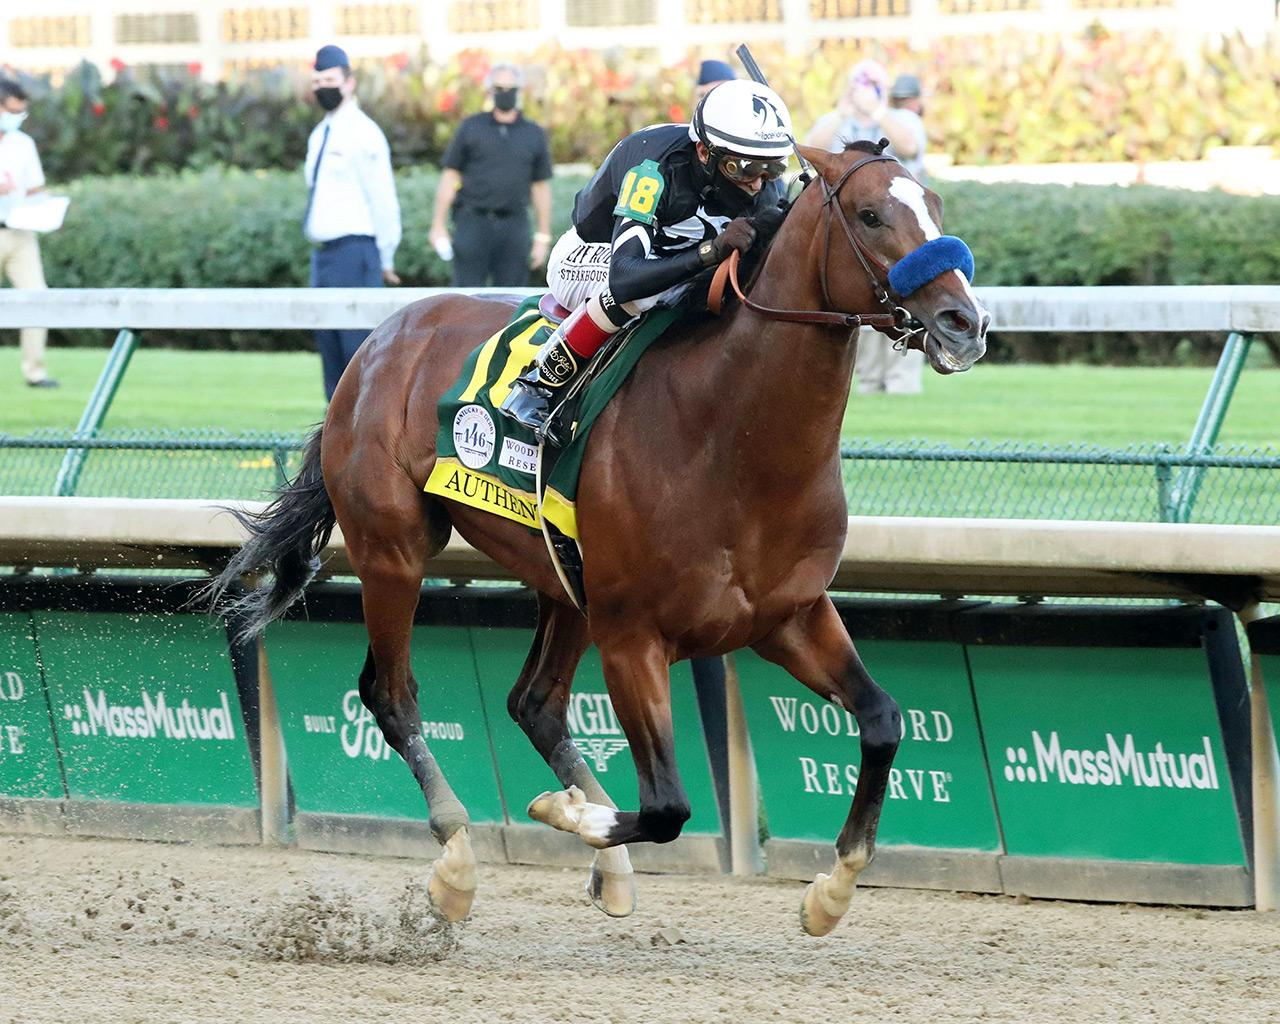 AUTHENTIC---The-Kentucky-Derby---146th-Running---09-05-20---R14---CD---Finish-02